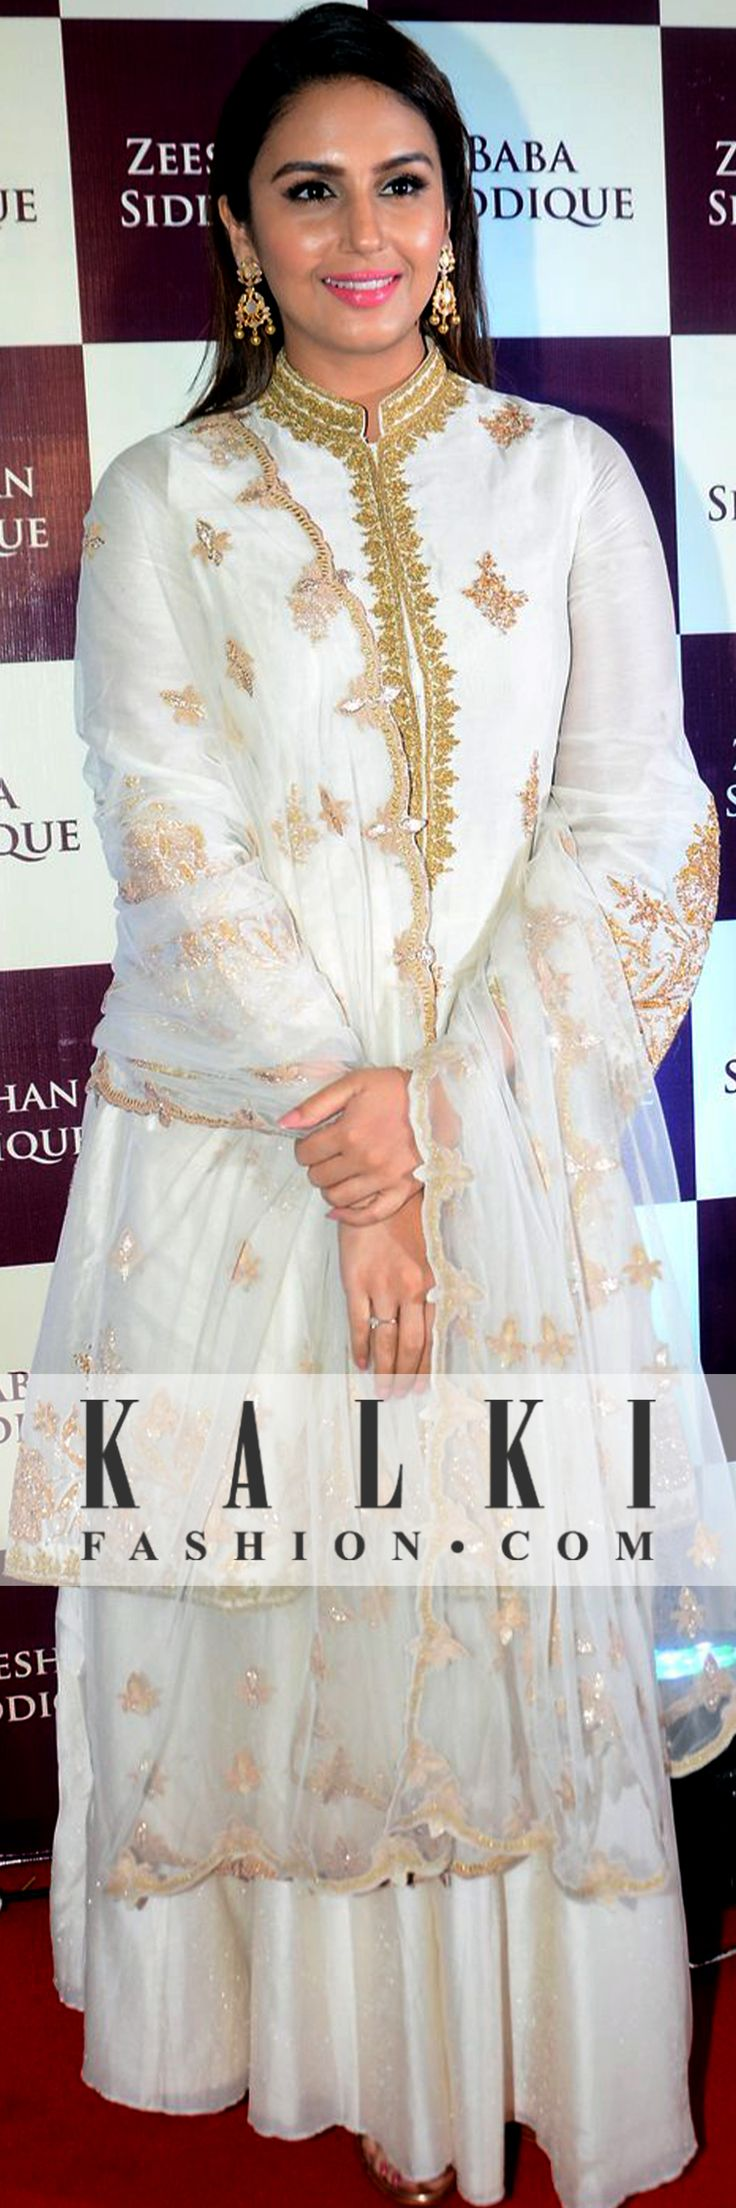 Huma Qureshi was seen dressed in an off white palazzo set with golden intricate work and a net dupatta